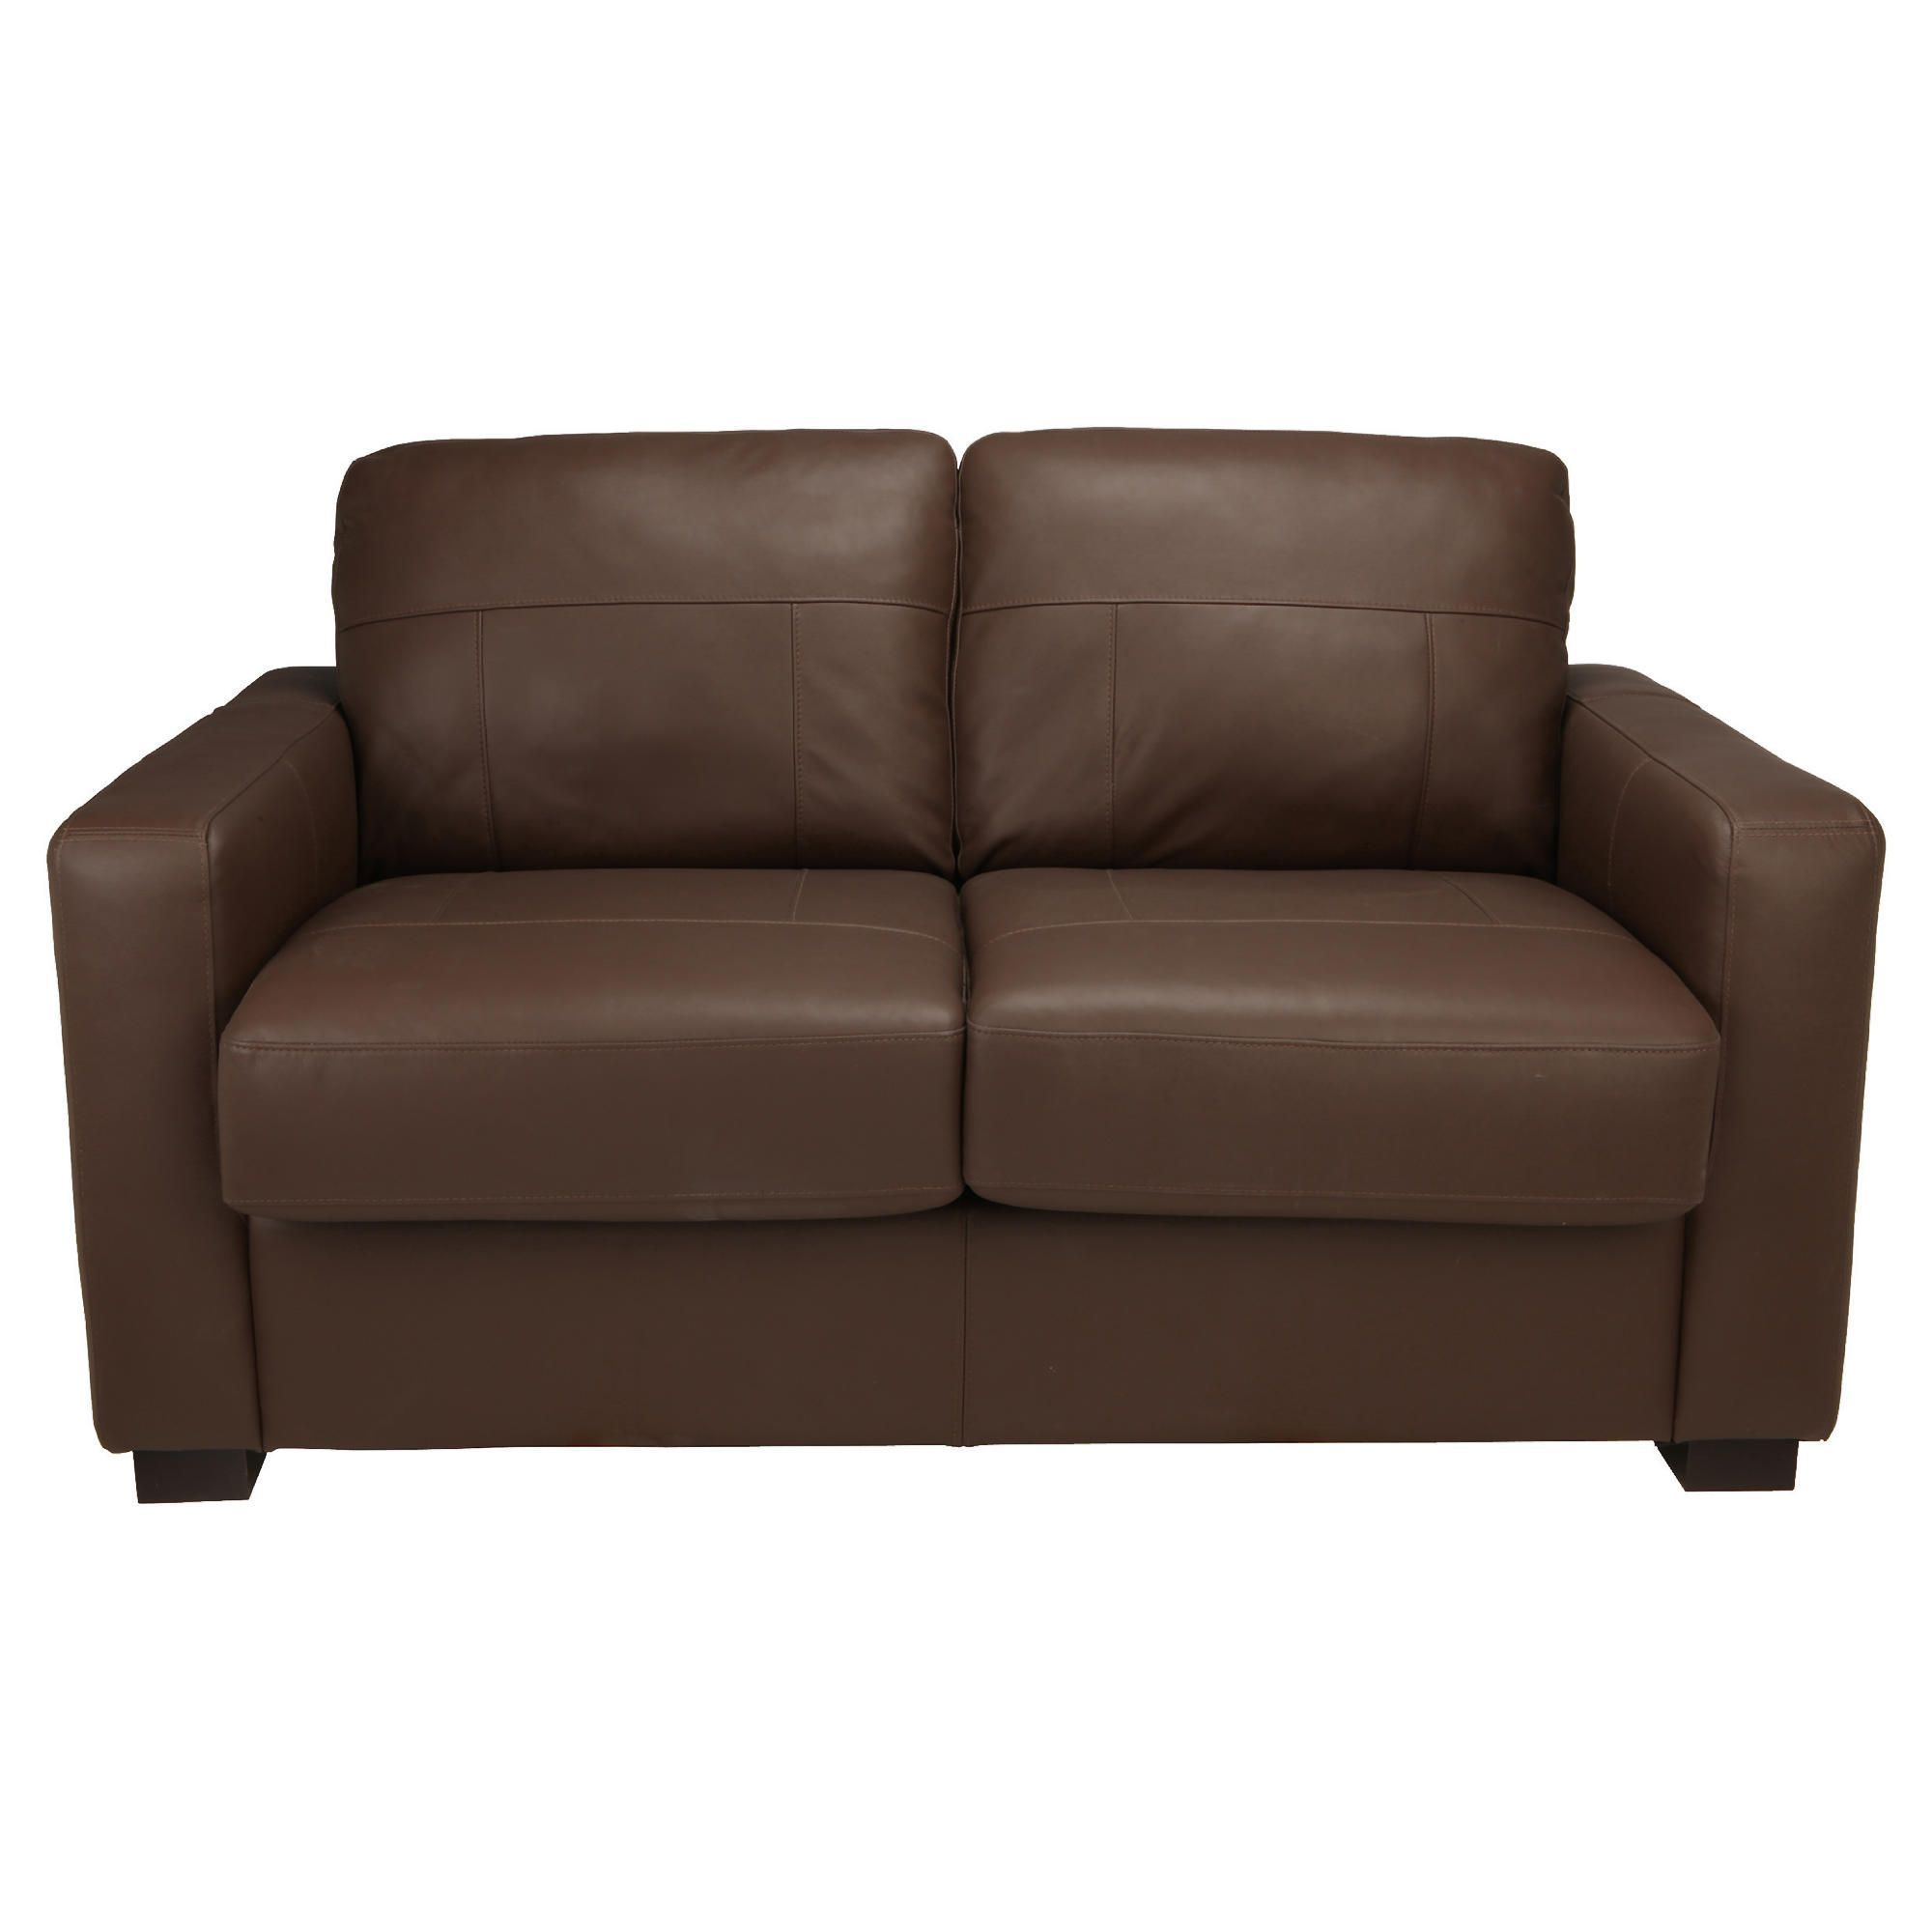 Colorado Leather Sofabed, Brown at Tescos Direct